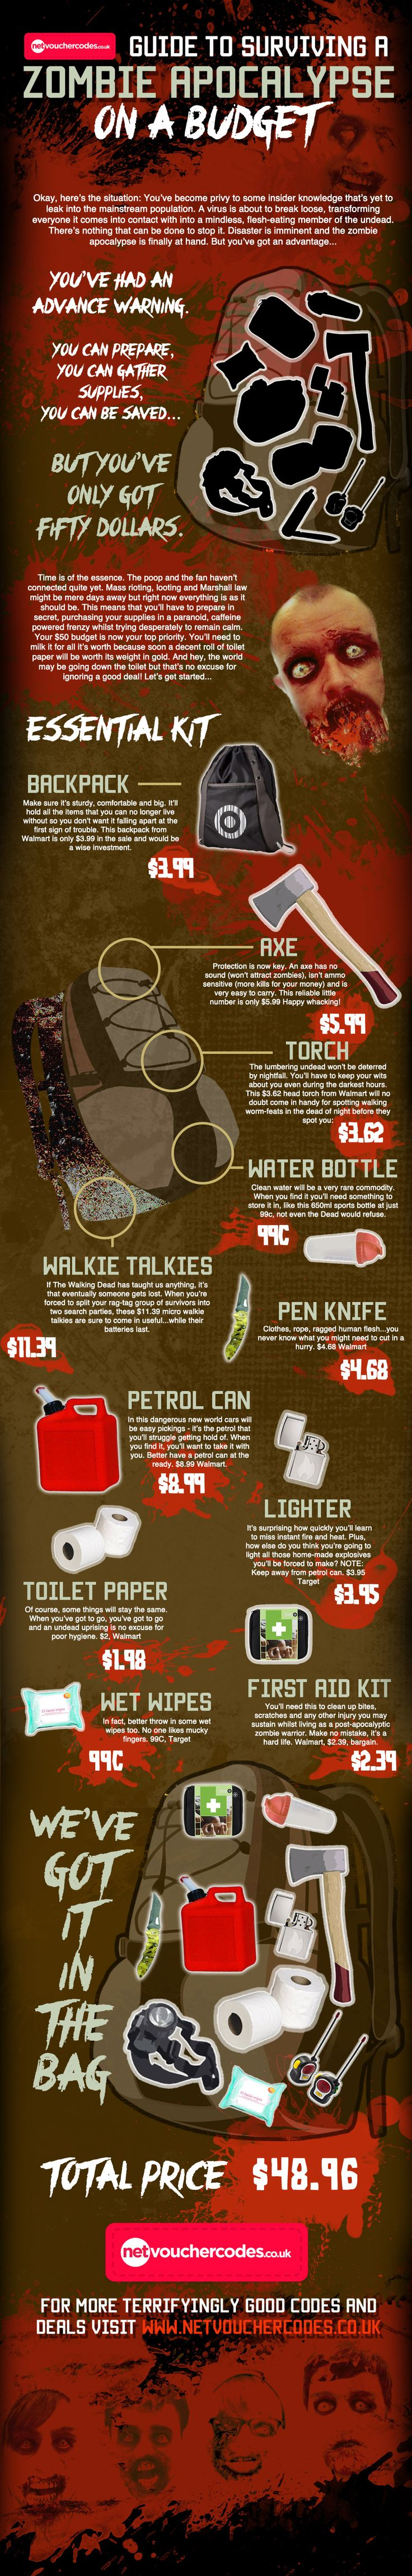 Guide to Surviving A Zombie Apocalypse | Visual.ly